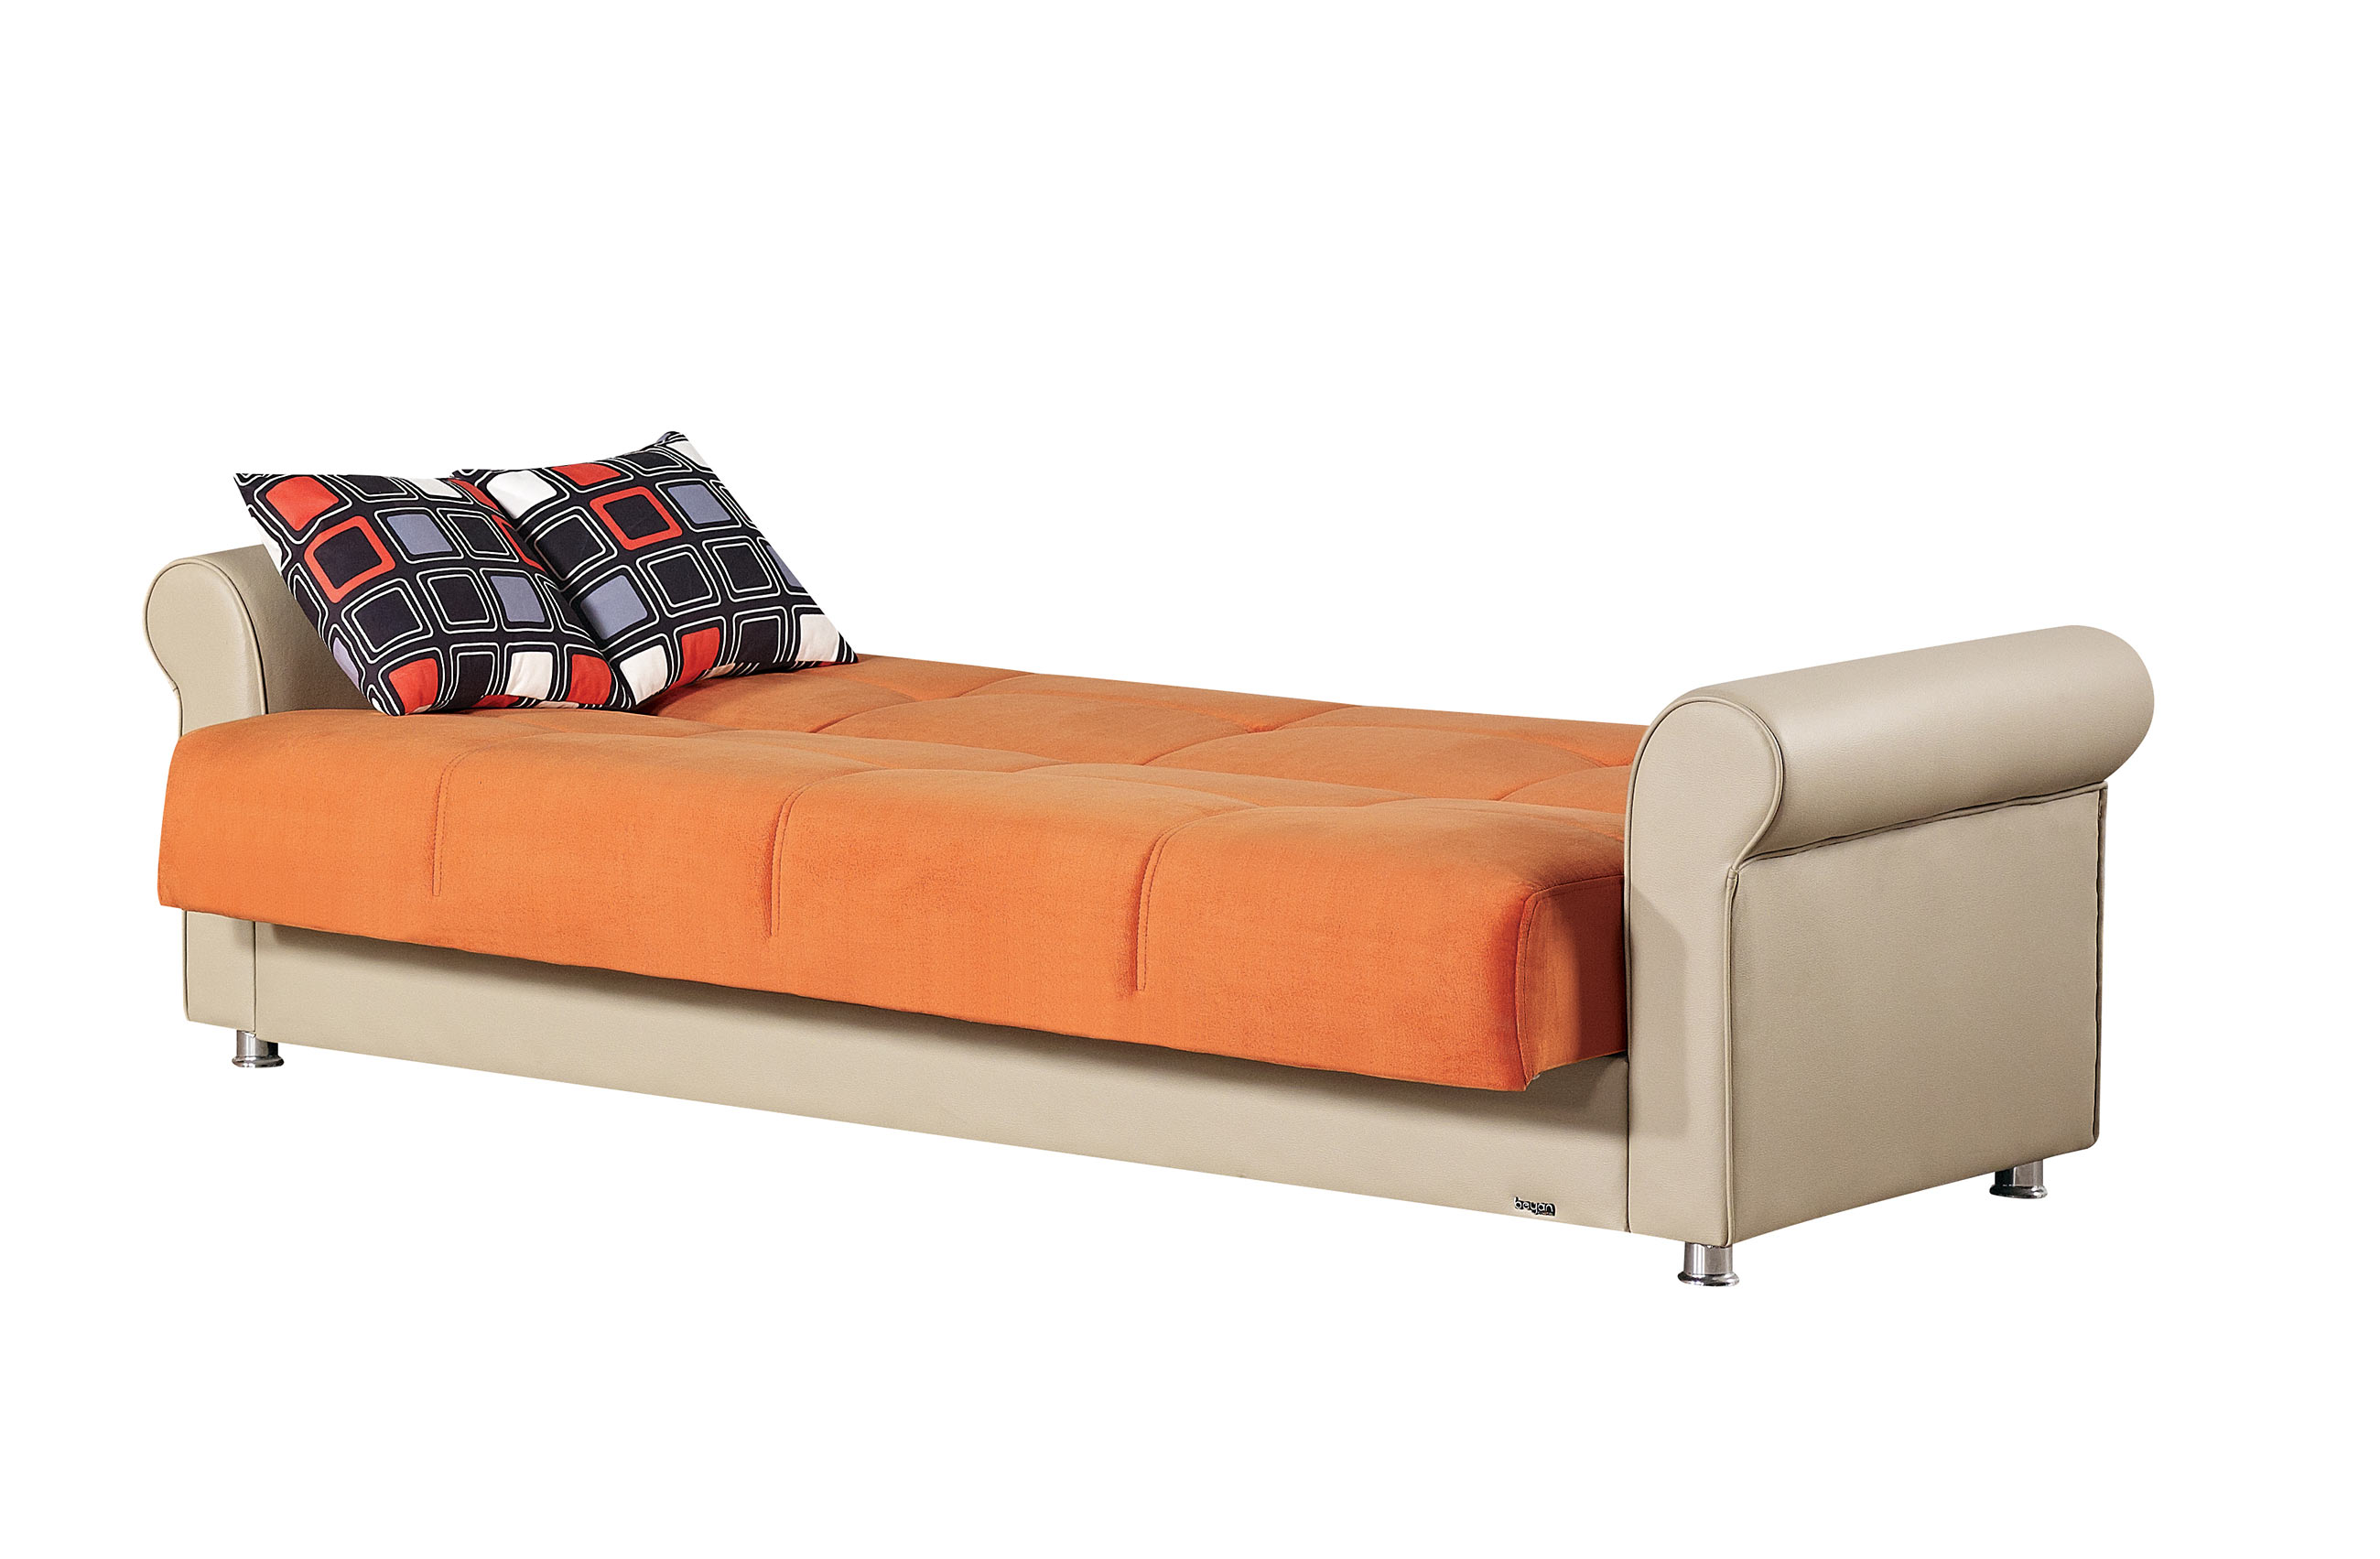 empire furniture sofa leather sleep pacific orange fabric bed by usa